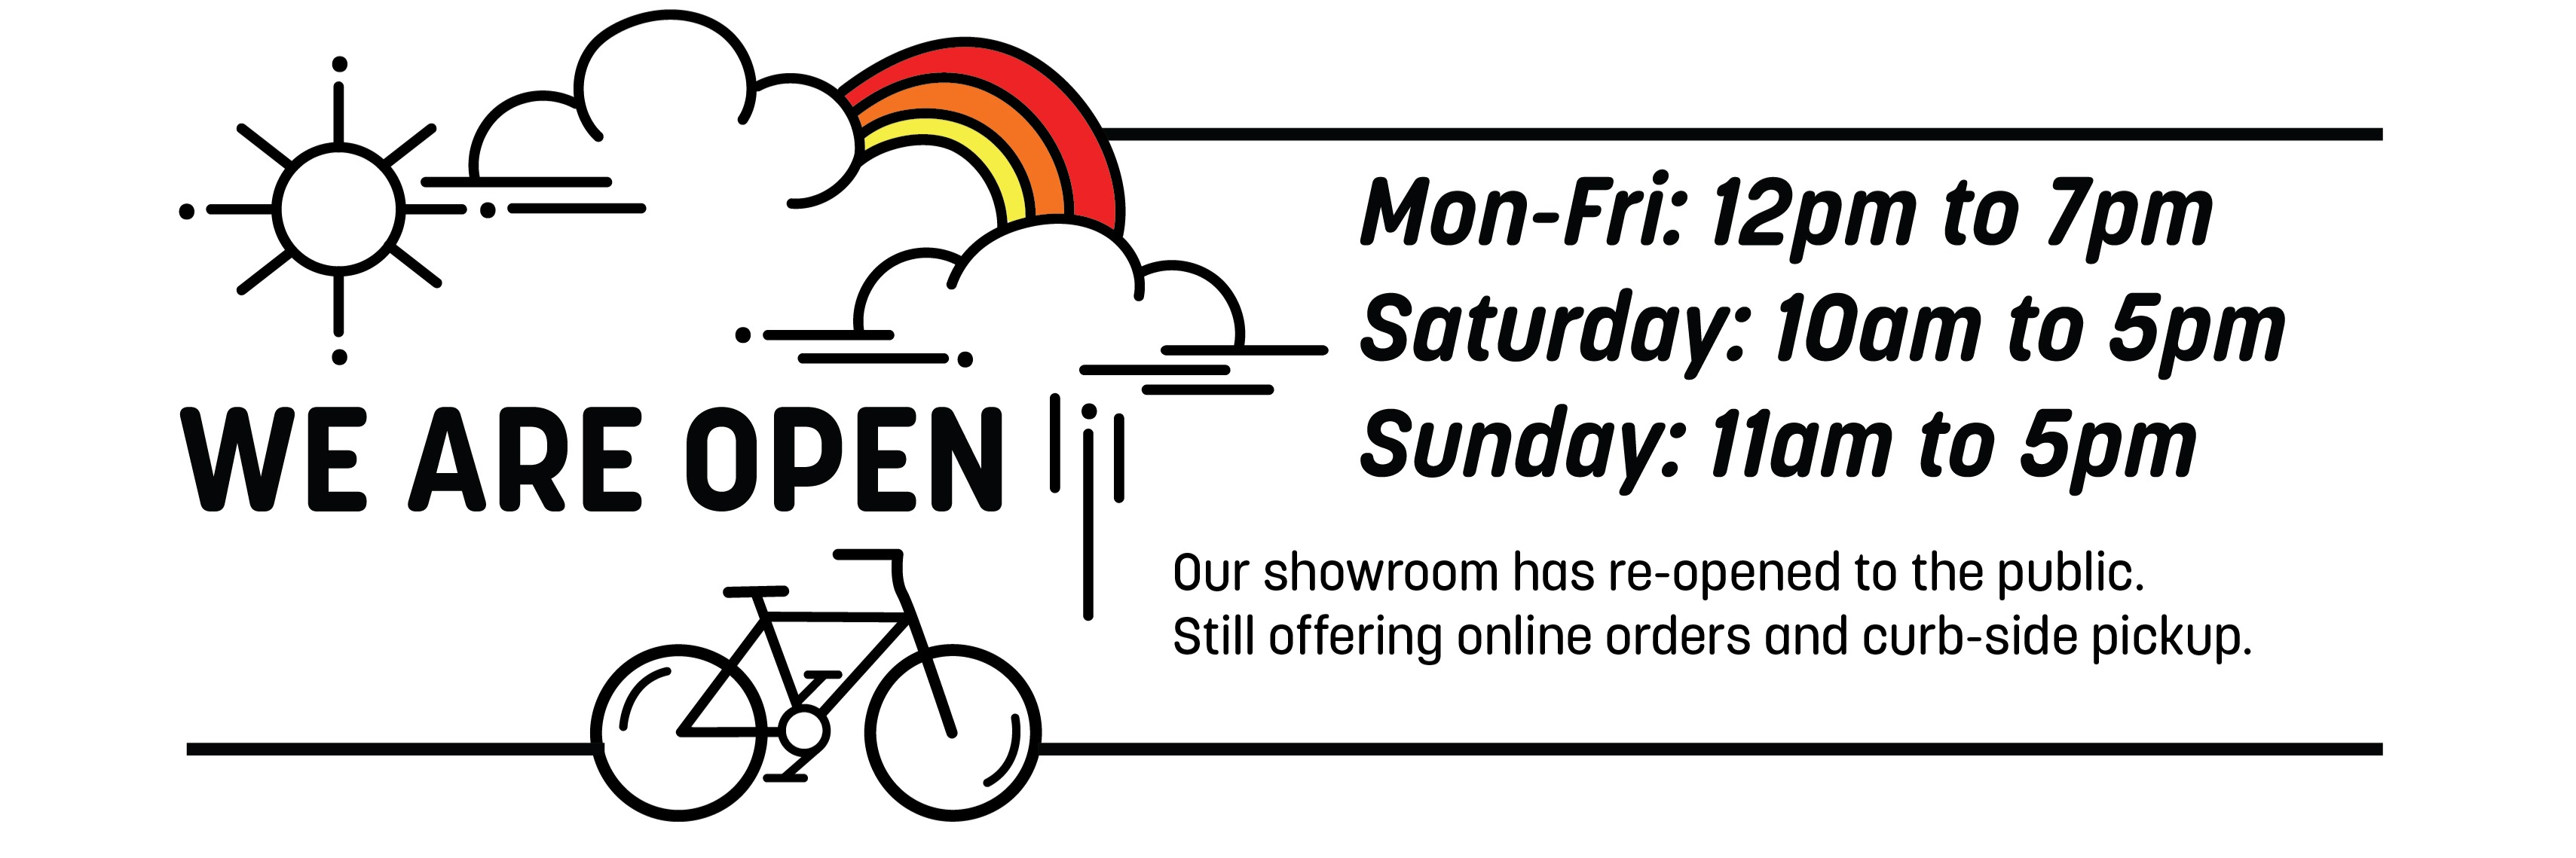 We Are Open! Monday, Mon-Fri 12pm to 7pm, Saturday: 10am -5pm, Sunday: 11am-5pm. Our showroom has re-opened to the public. Still offering online orders, curb-side pickup and city-wide delivery.